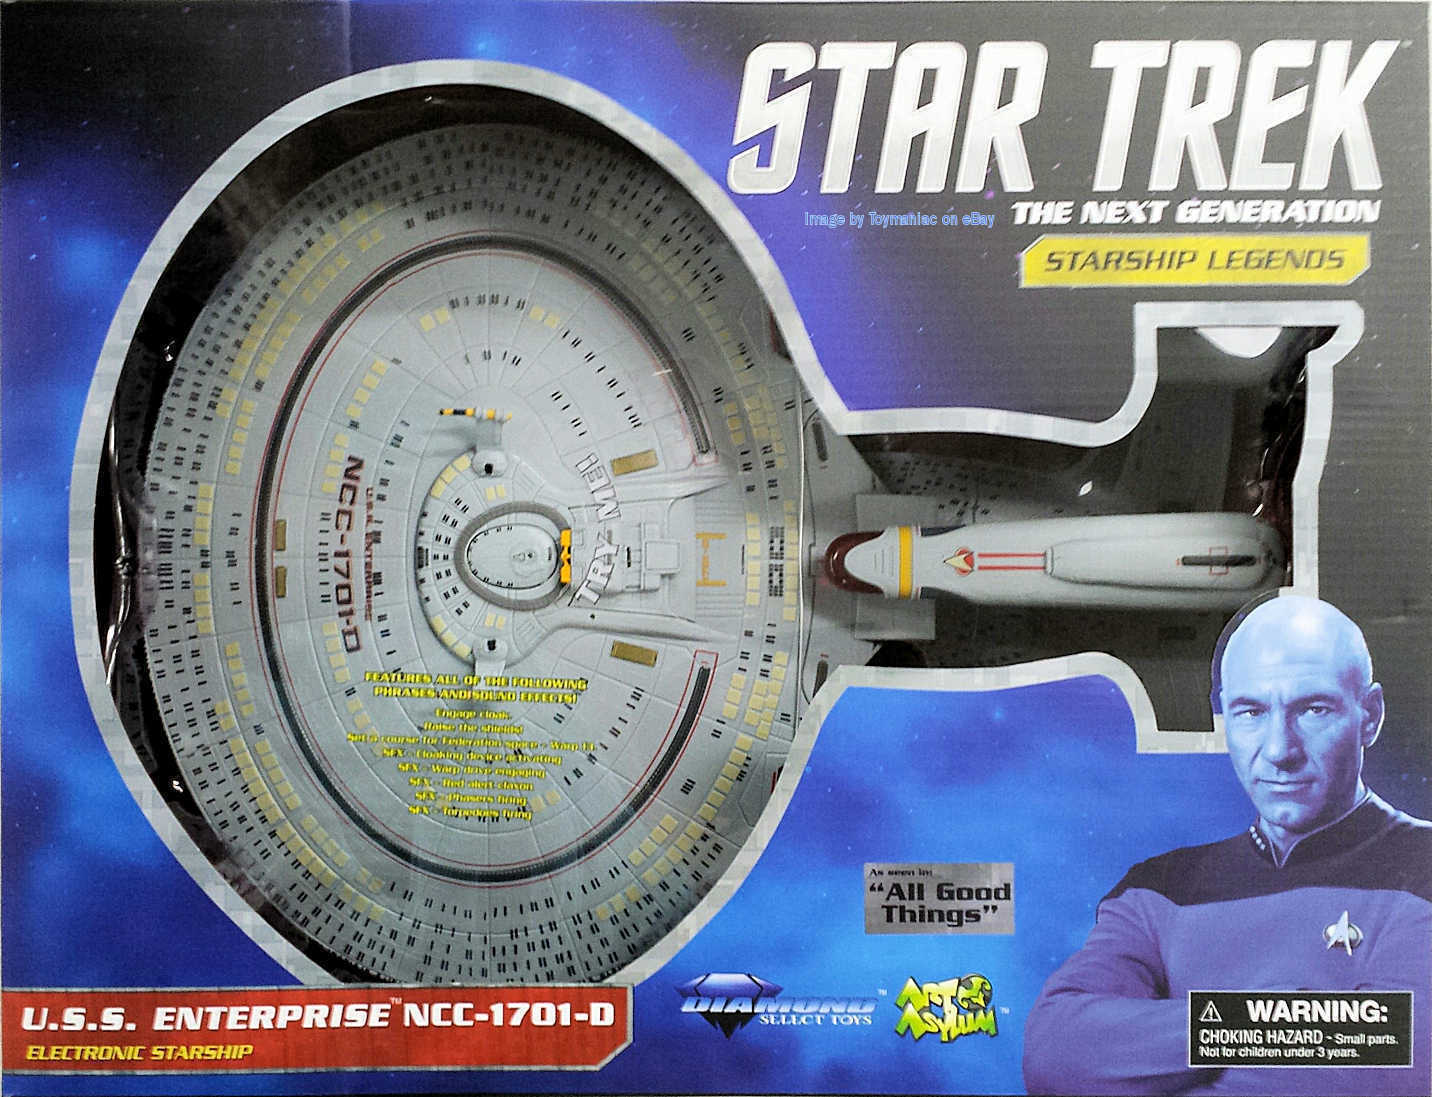 STAR TREK  ALL GOOD THINGS  FUTURE ENTERPRISE 1701 D ELECTRONIC STARSHIP DIAMOND